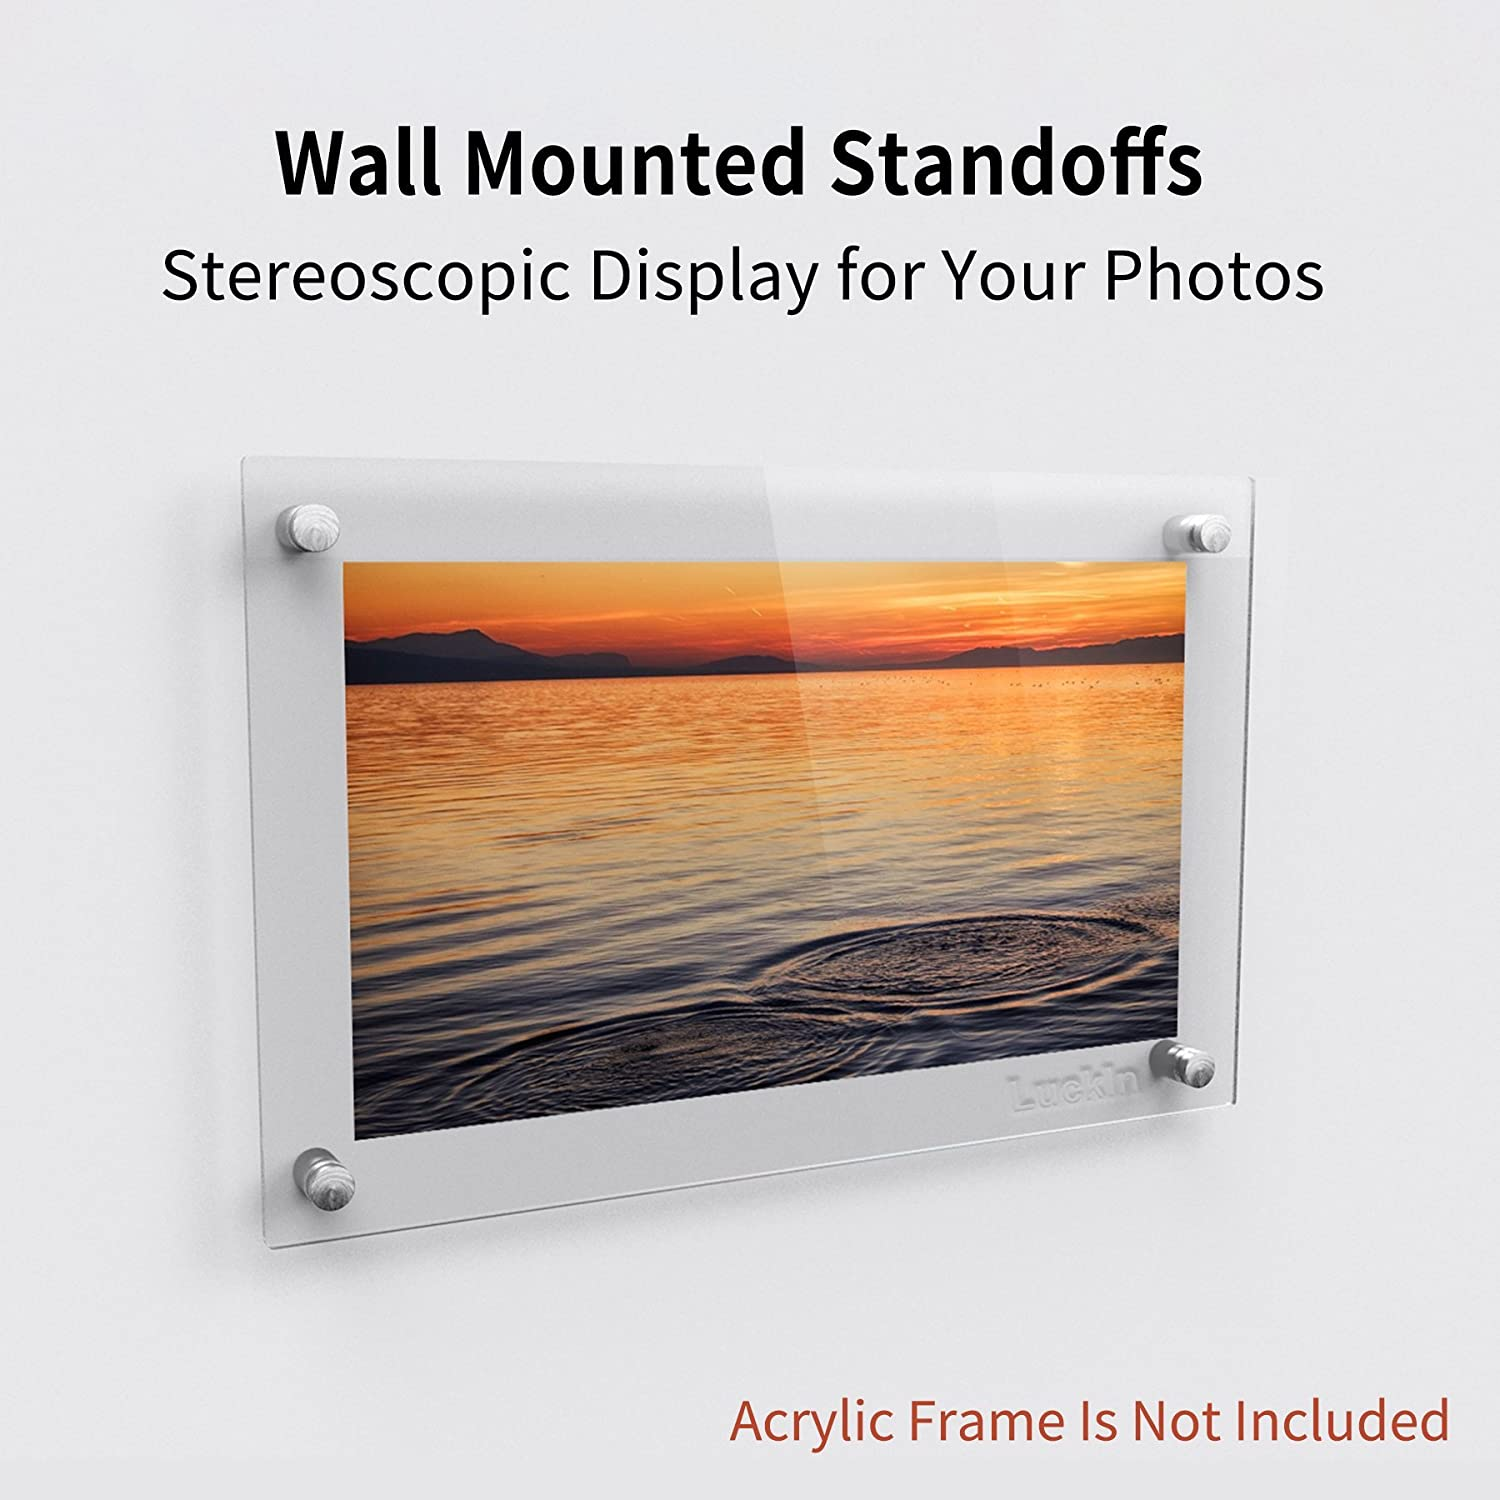 Plexiglass Picture Acrylic Standoff Mounting Hardware LuckIn 20-Pack Sign Standoff Screws 5//8 x 1 5//8 in Stainless Steel Standoffs for Glass Panel